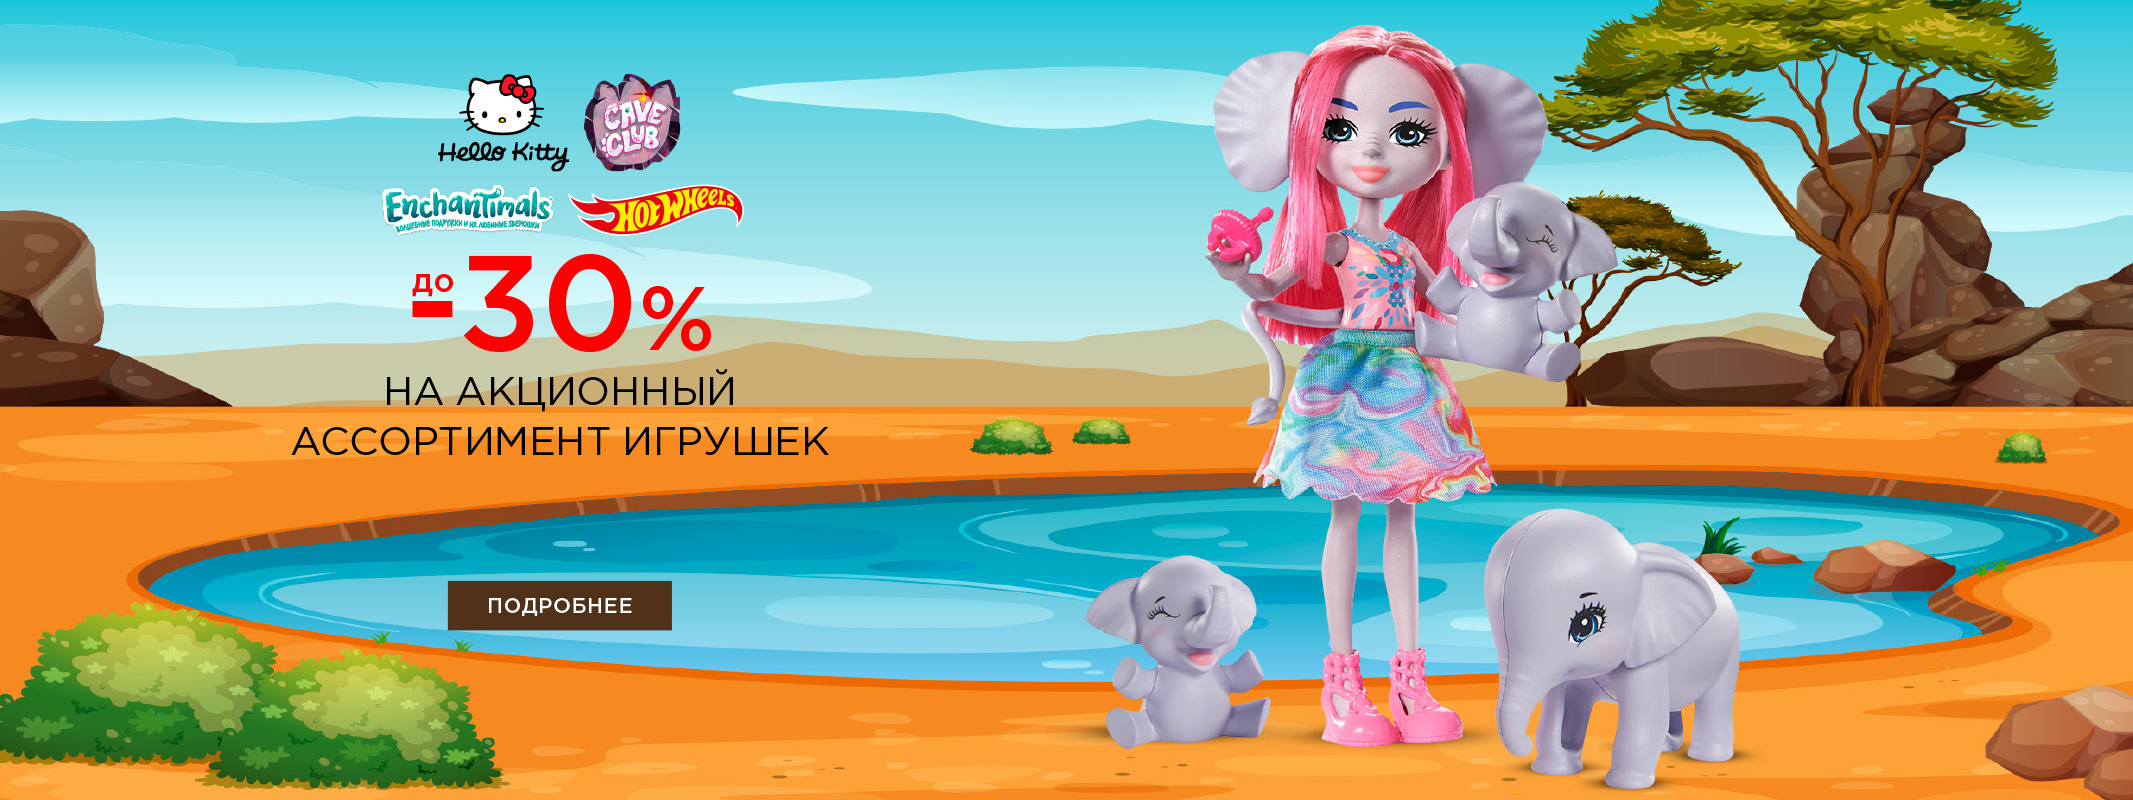 Cave Club, Hello Kitty, Enchantimals, Hot Wheels, Mega Bloks и Barbie